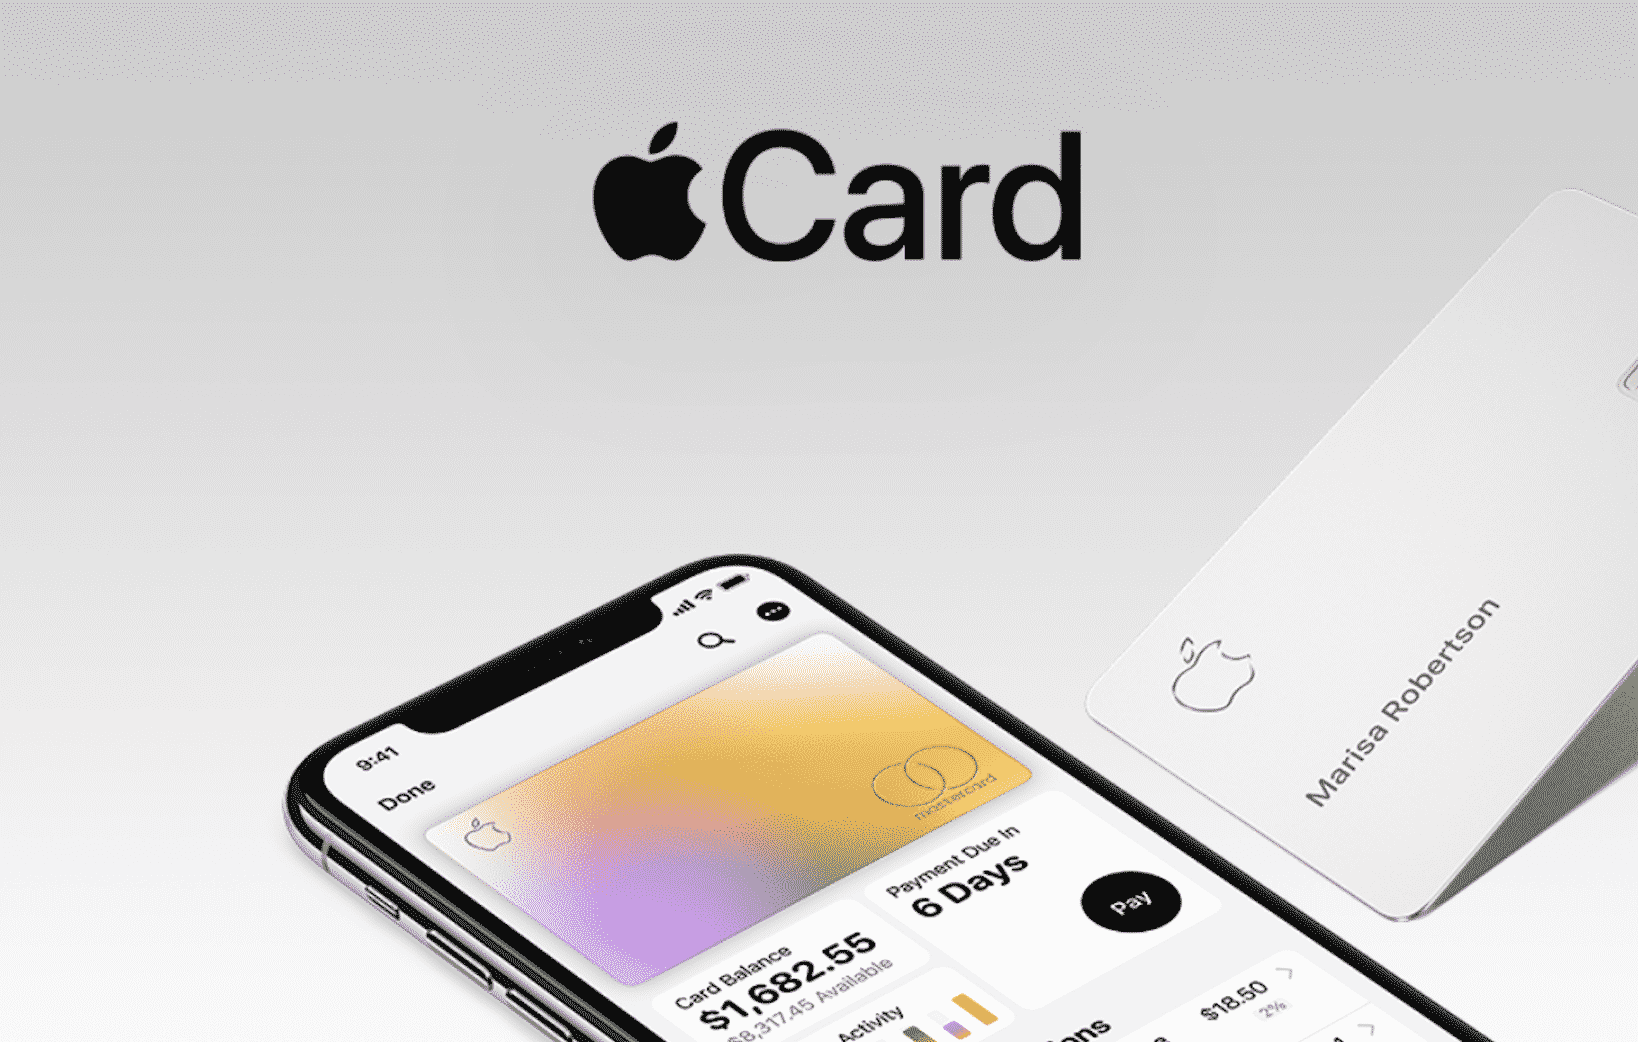 Advanced fraud protection introduced to Apple Card in iOS 15